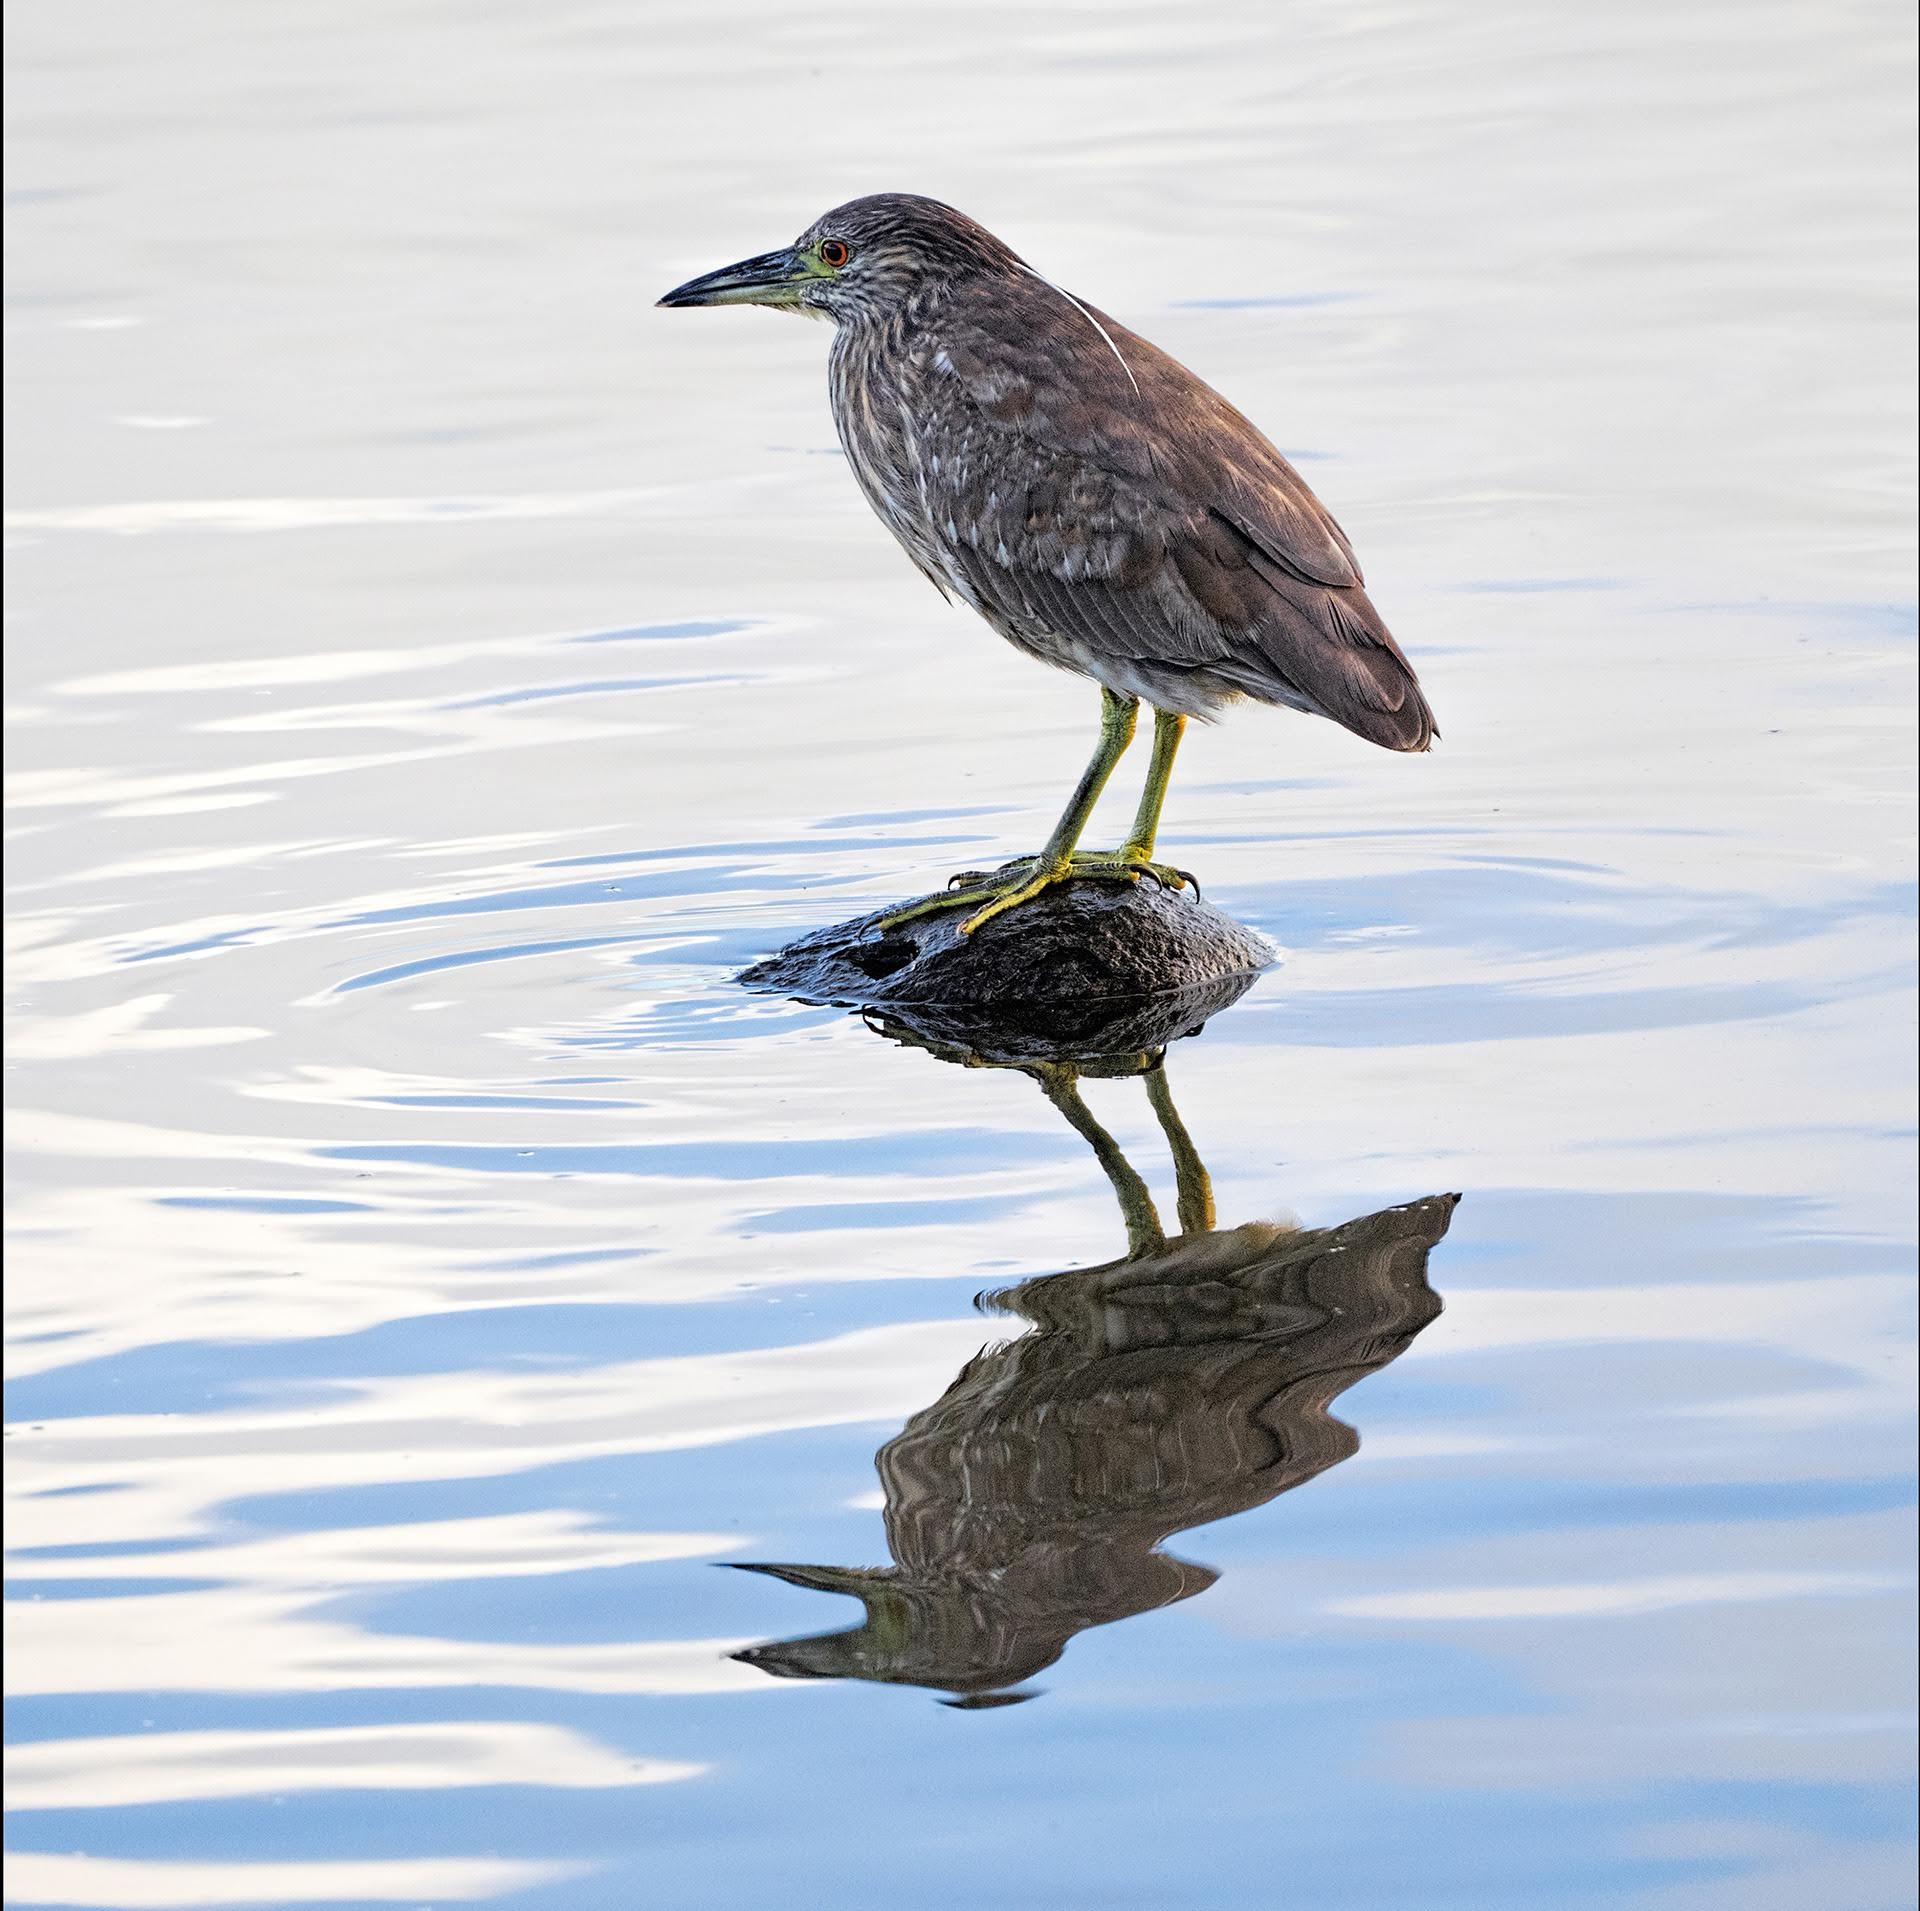 Heron Juvenile - Color Print (Open) - Name Withheld Per Request